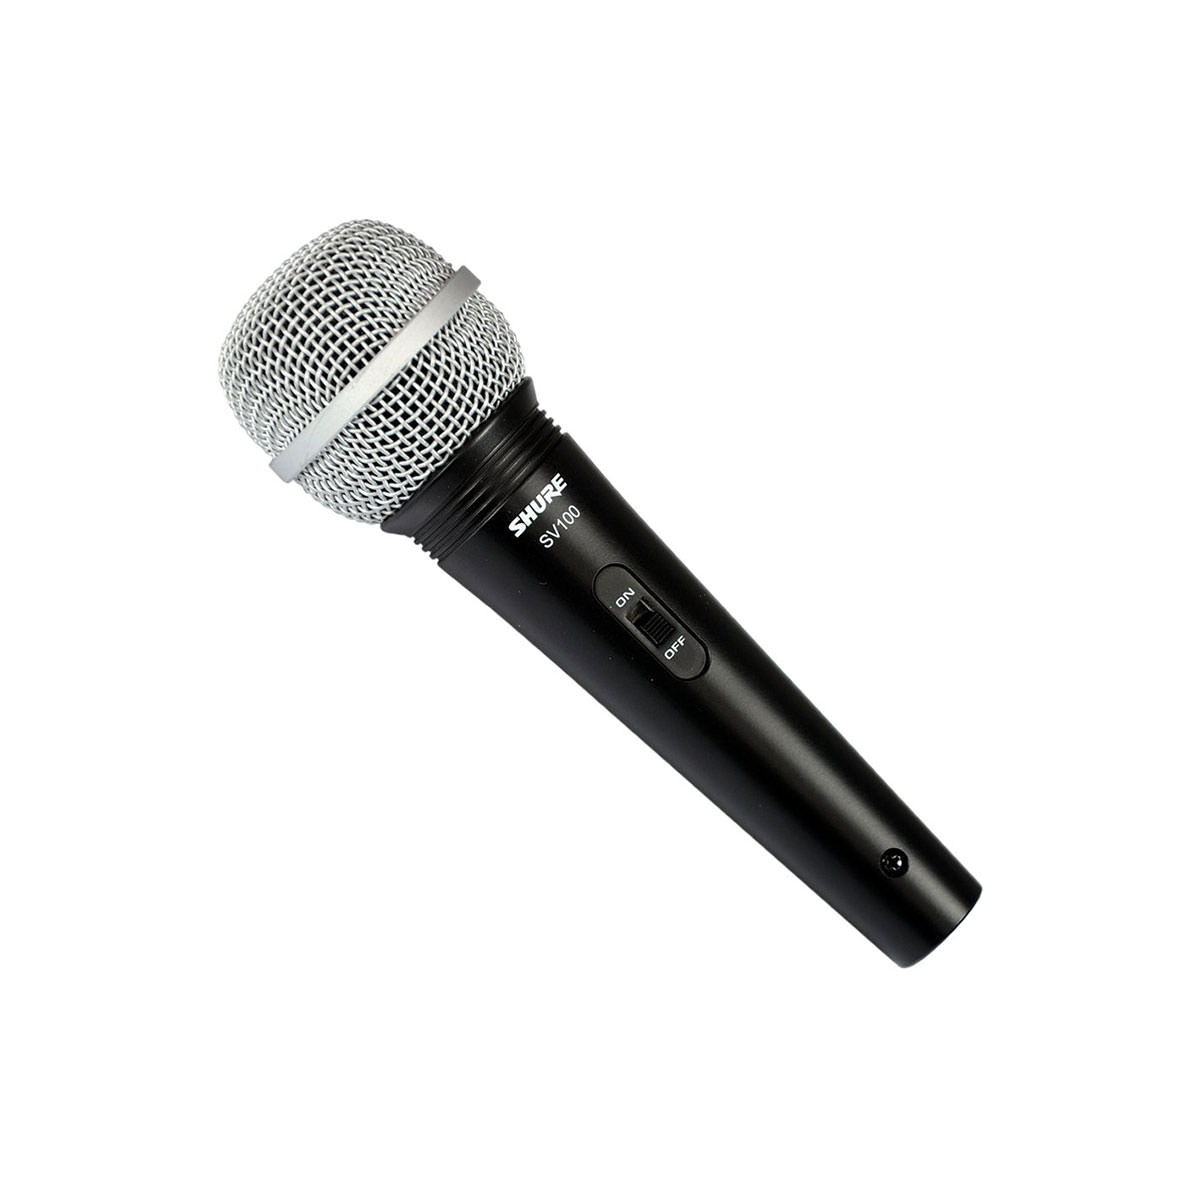 Shure SV 100 Handheld Microphone with 6 Meter Cable